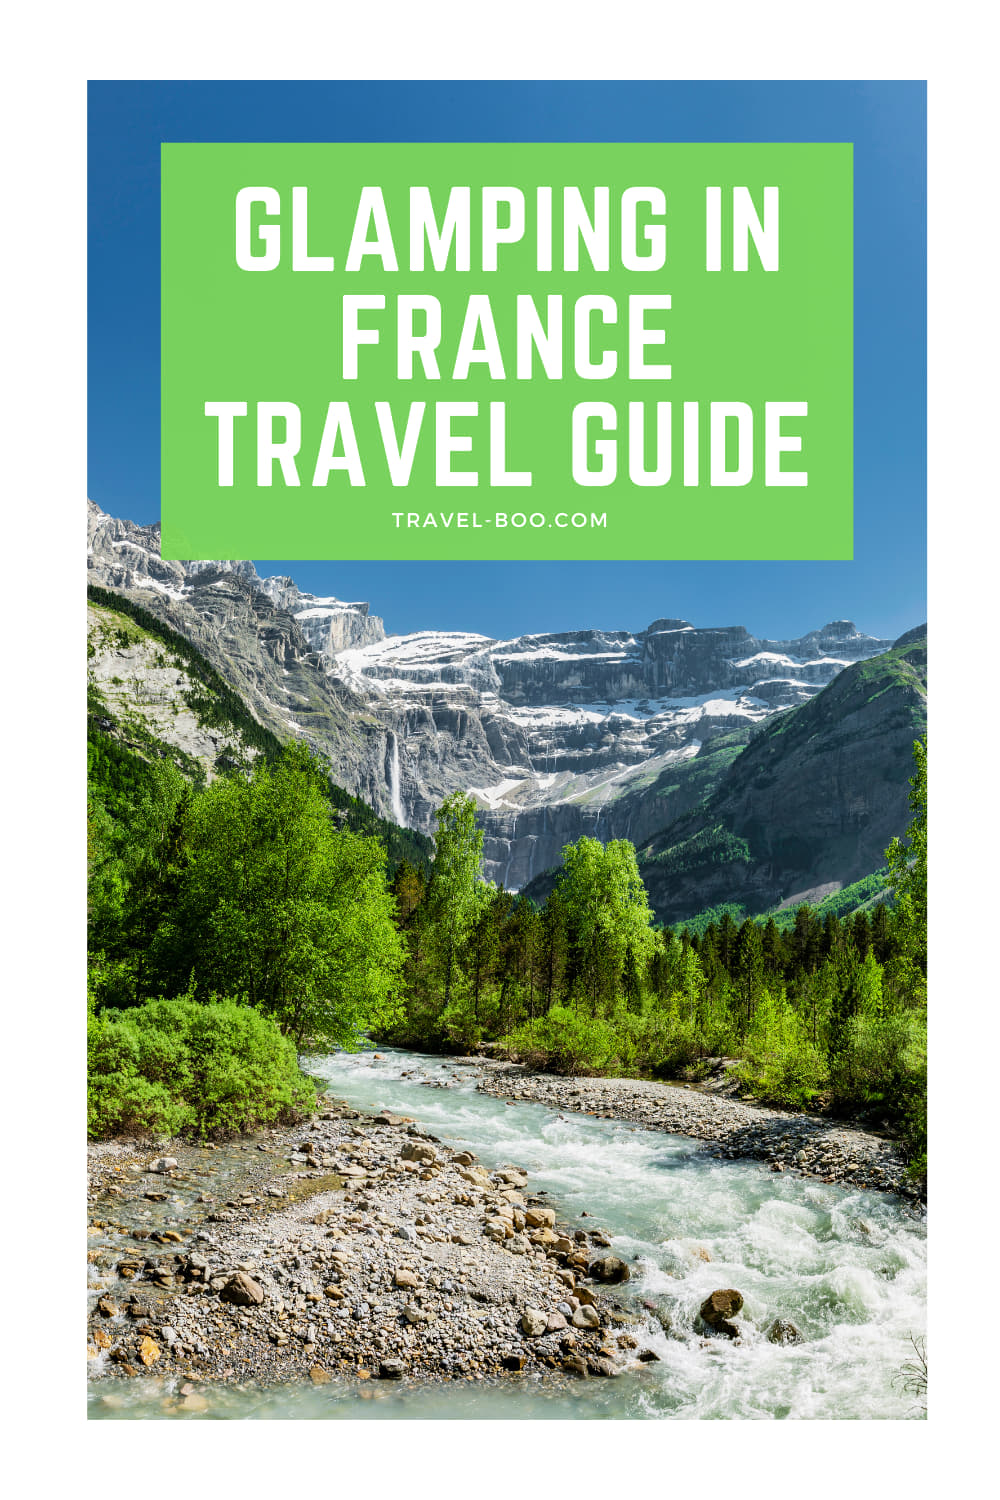 The 7 Best French Luxury Camping Sites For Glamping in France! France Travel, Glamping in France, France Glamping, France Camping, France Travel Itinerary, Camping in France.